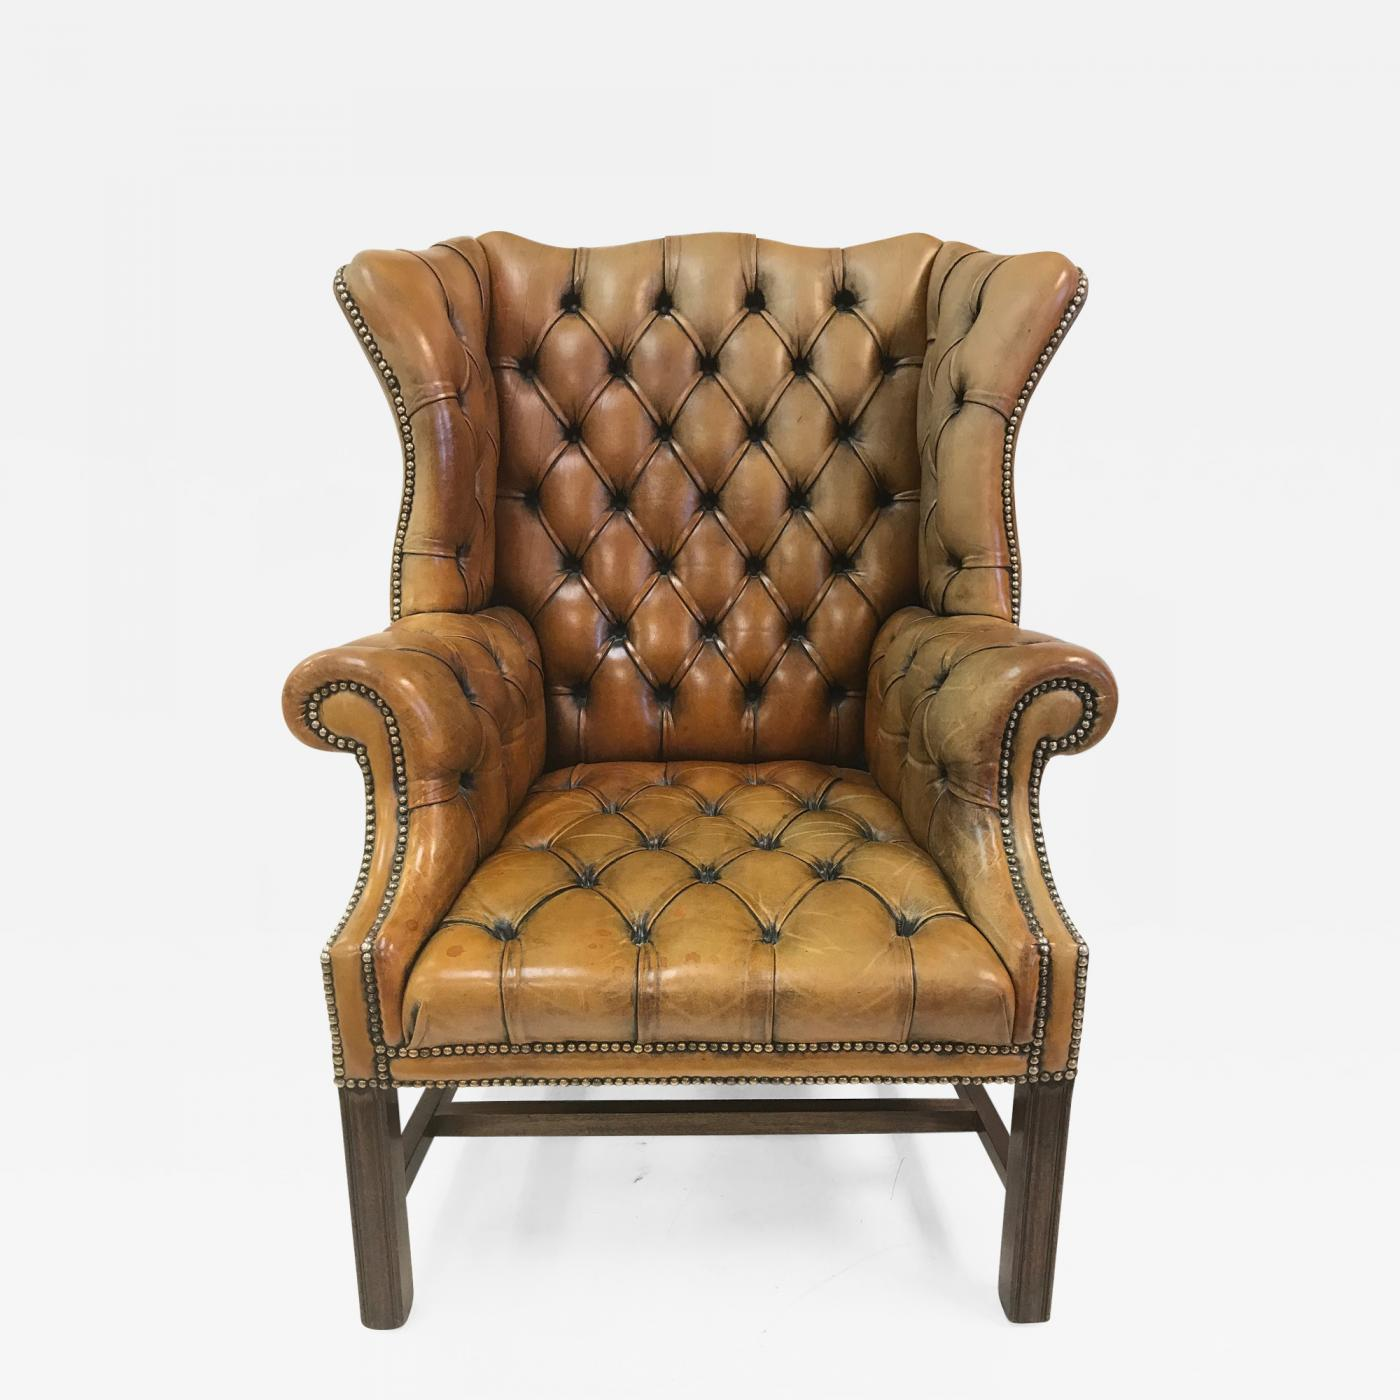 Wingback Tufted Chair Vintage English Leather Tufted Wingback Library Chair